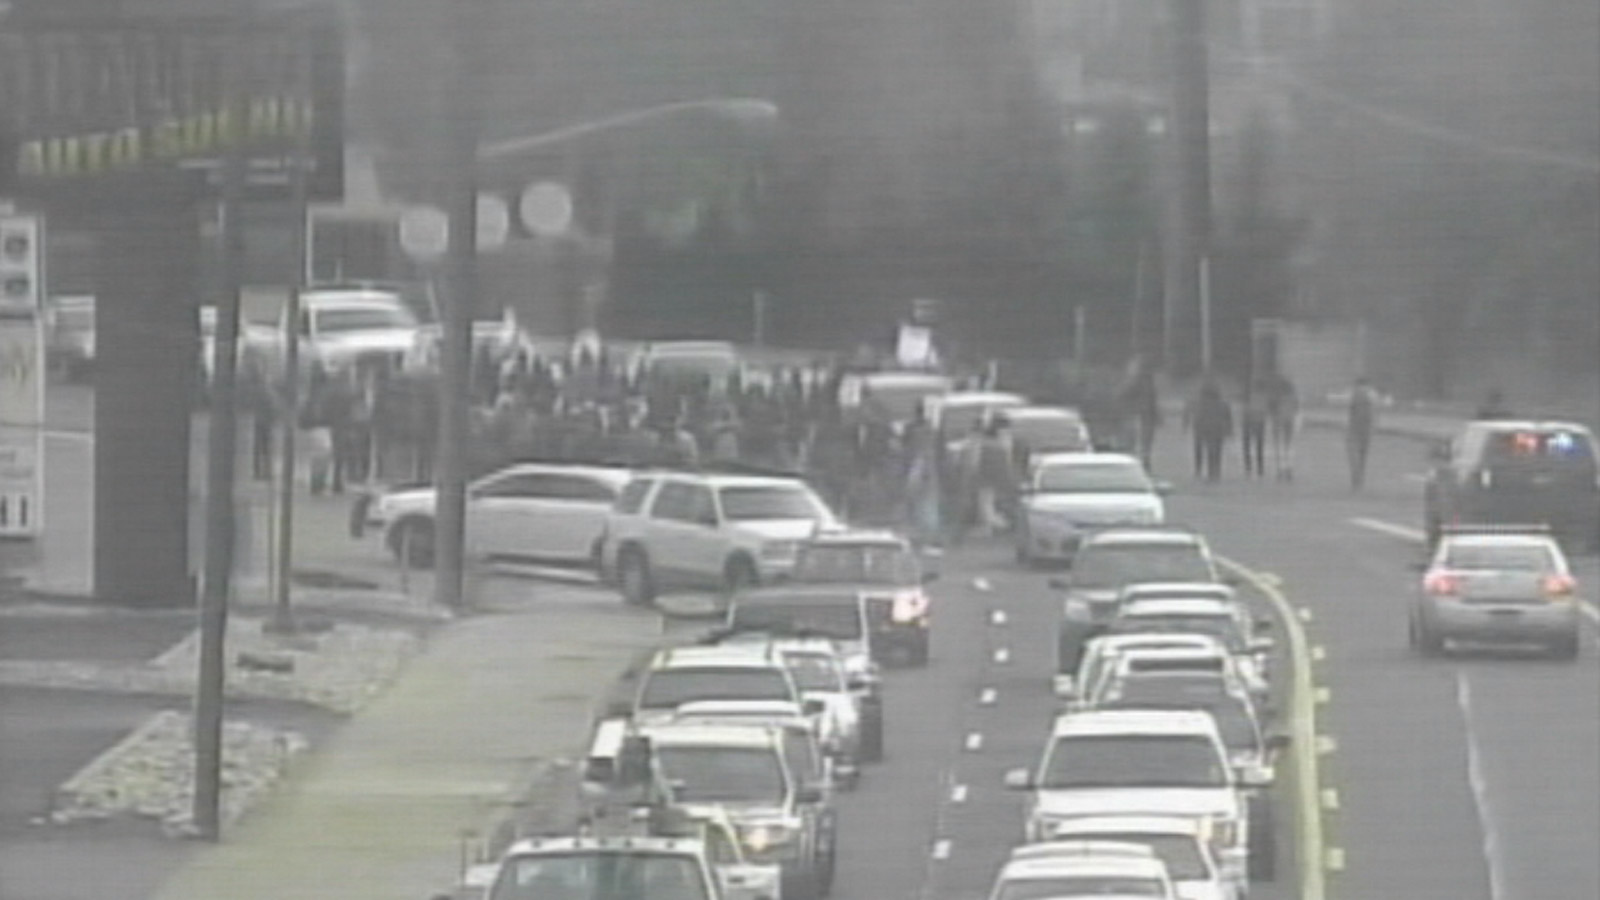 Students from George Washington High School disrupted traffic during a walkout on Thursday morning (credit: CDOT)